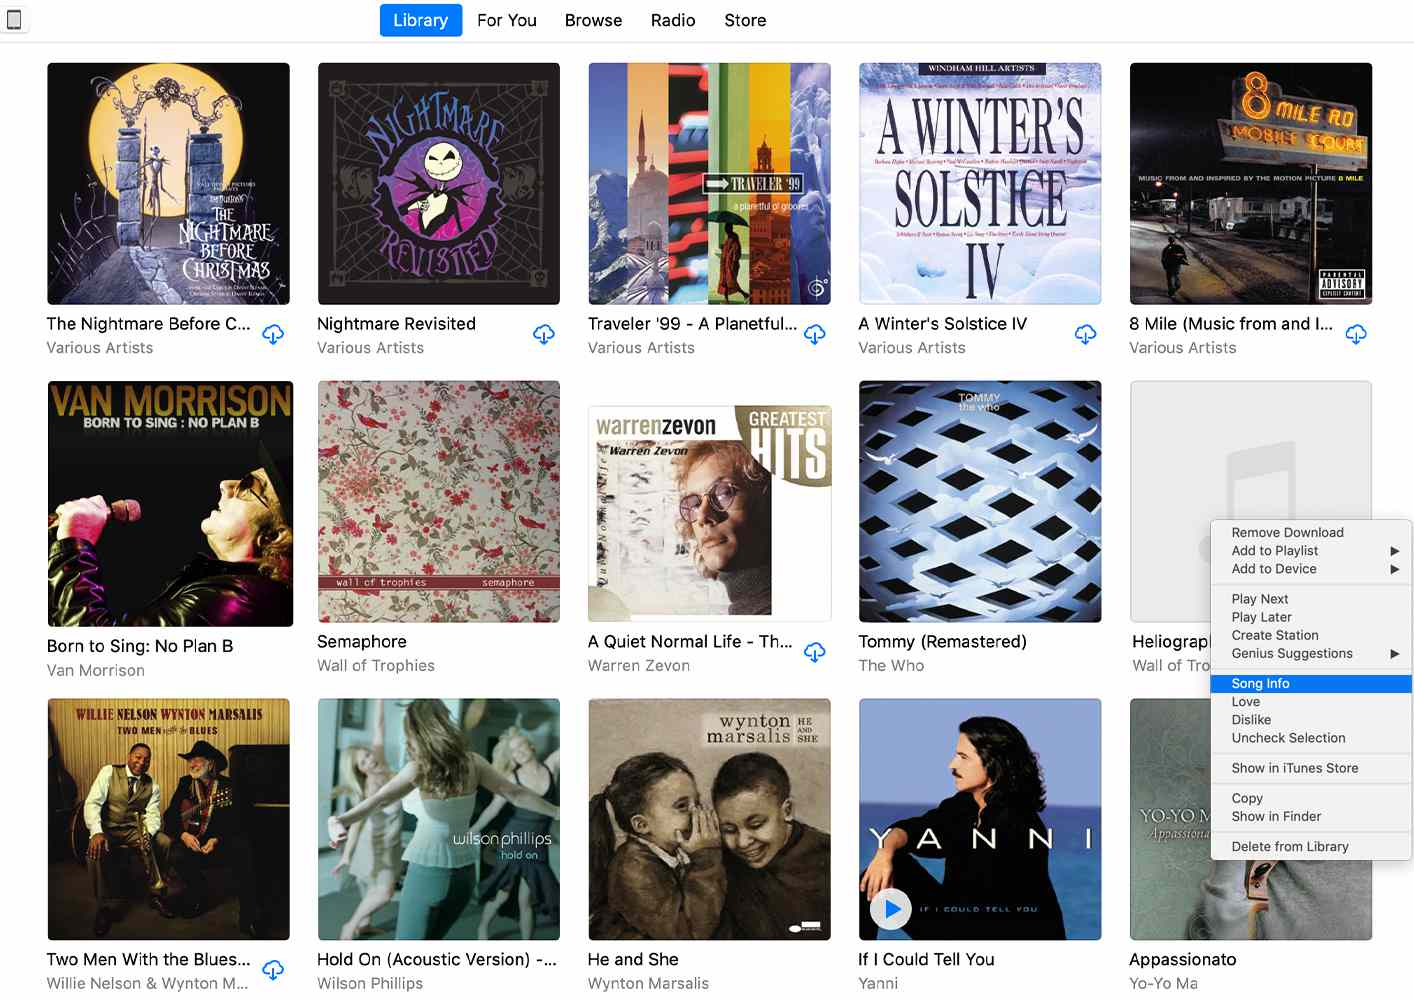 How to Add Album Art in iTunes